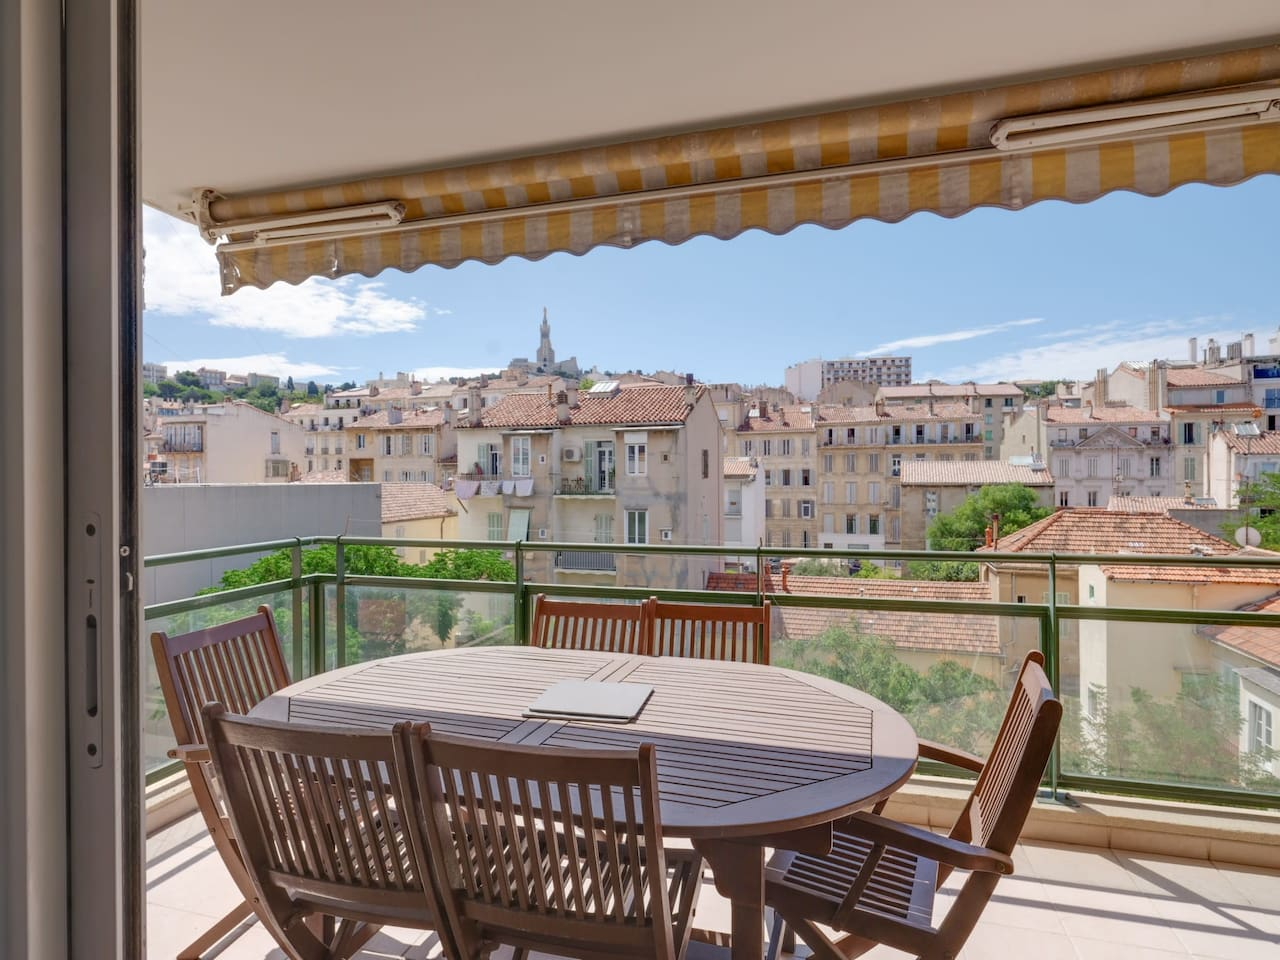 Furnished balcony with table and chairs to enjoy the south sun